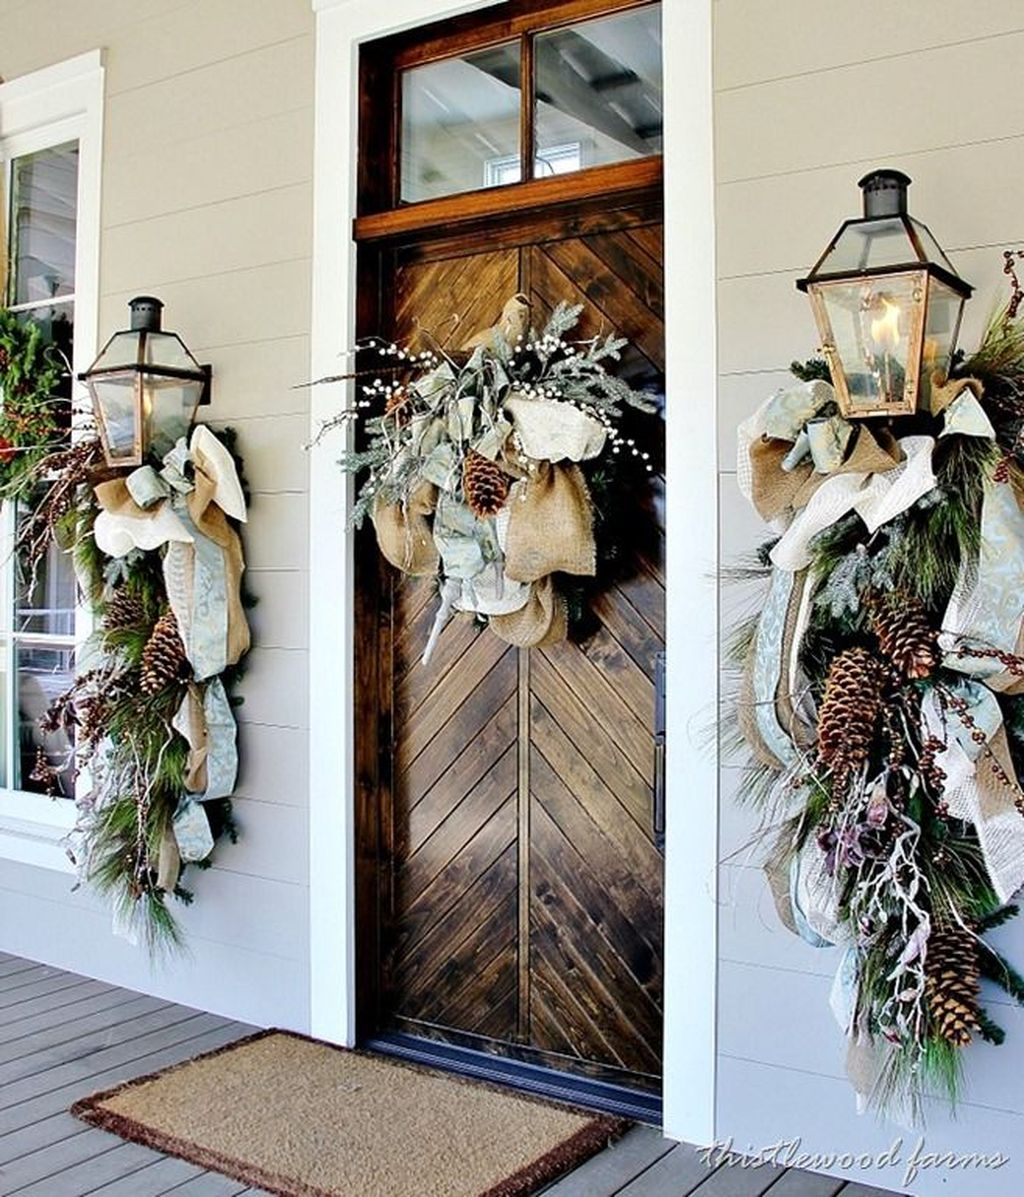 Magnificient Rustic Christmas Decorations And Wreaths Ideas 22